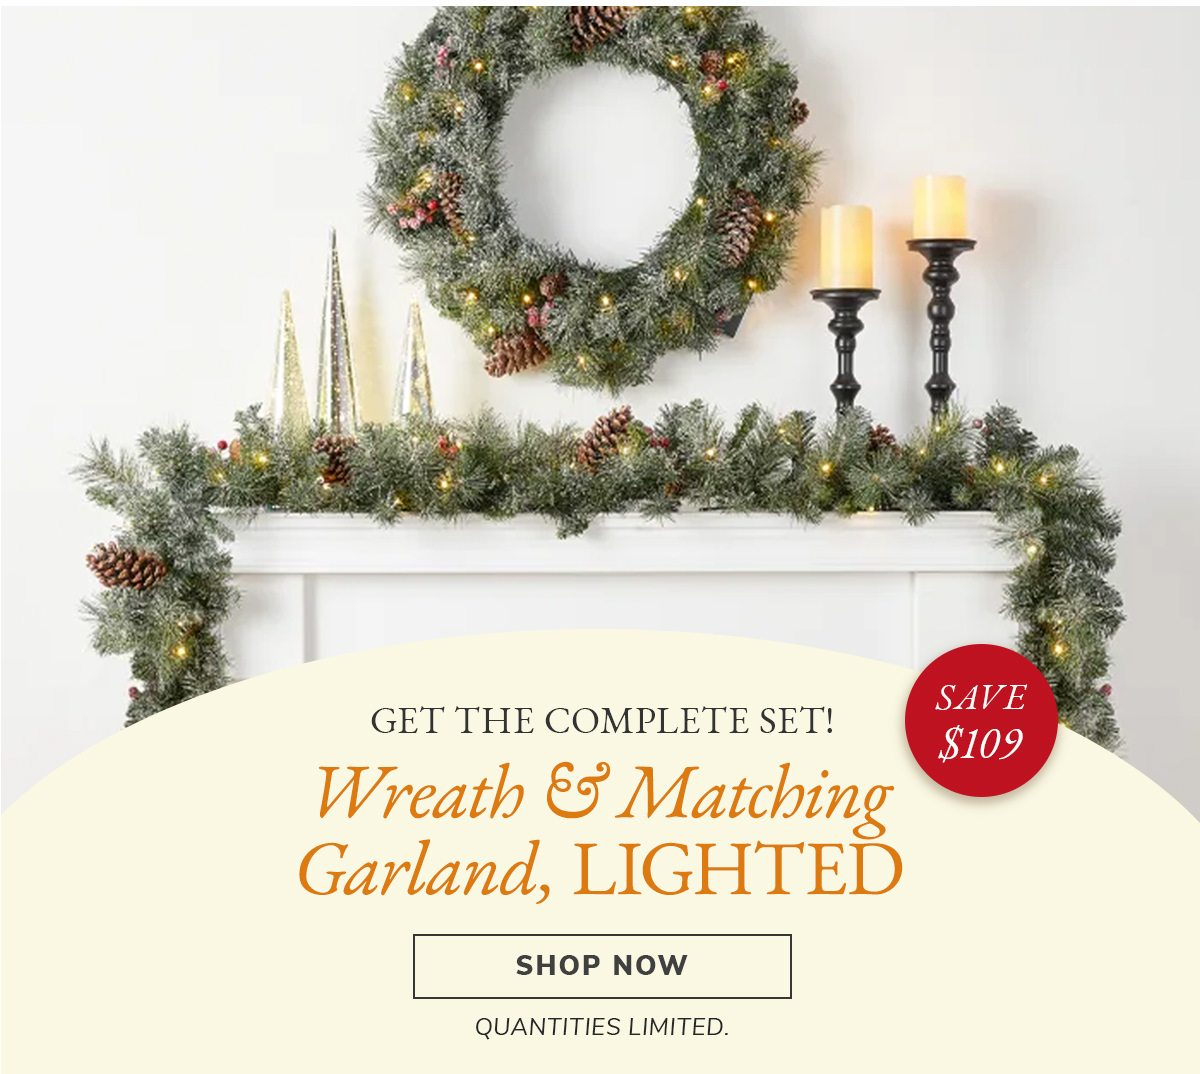 Get the complete set! Wreath & Matching garland, LIGHTED